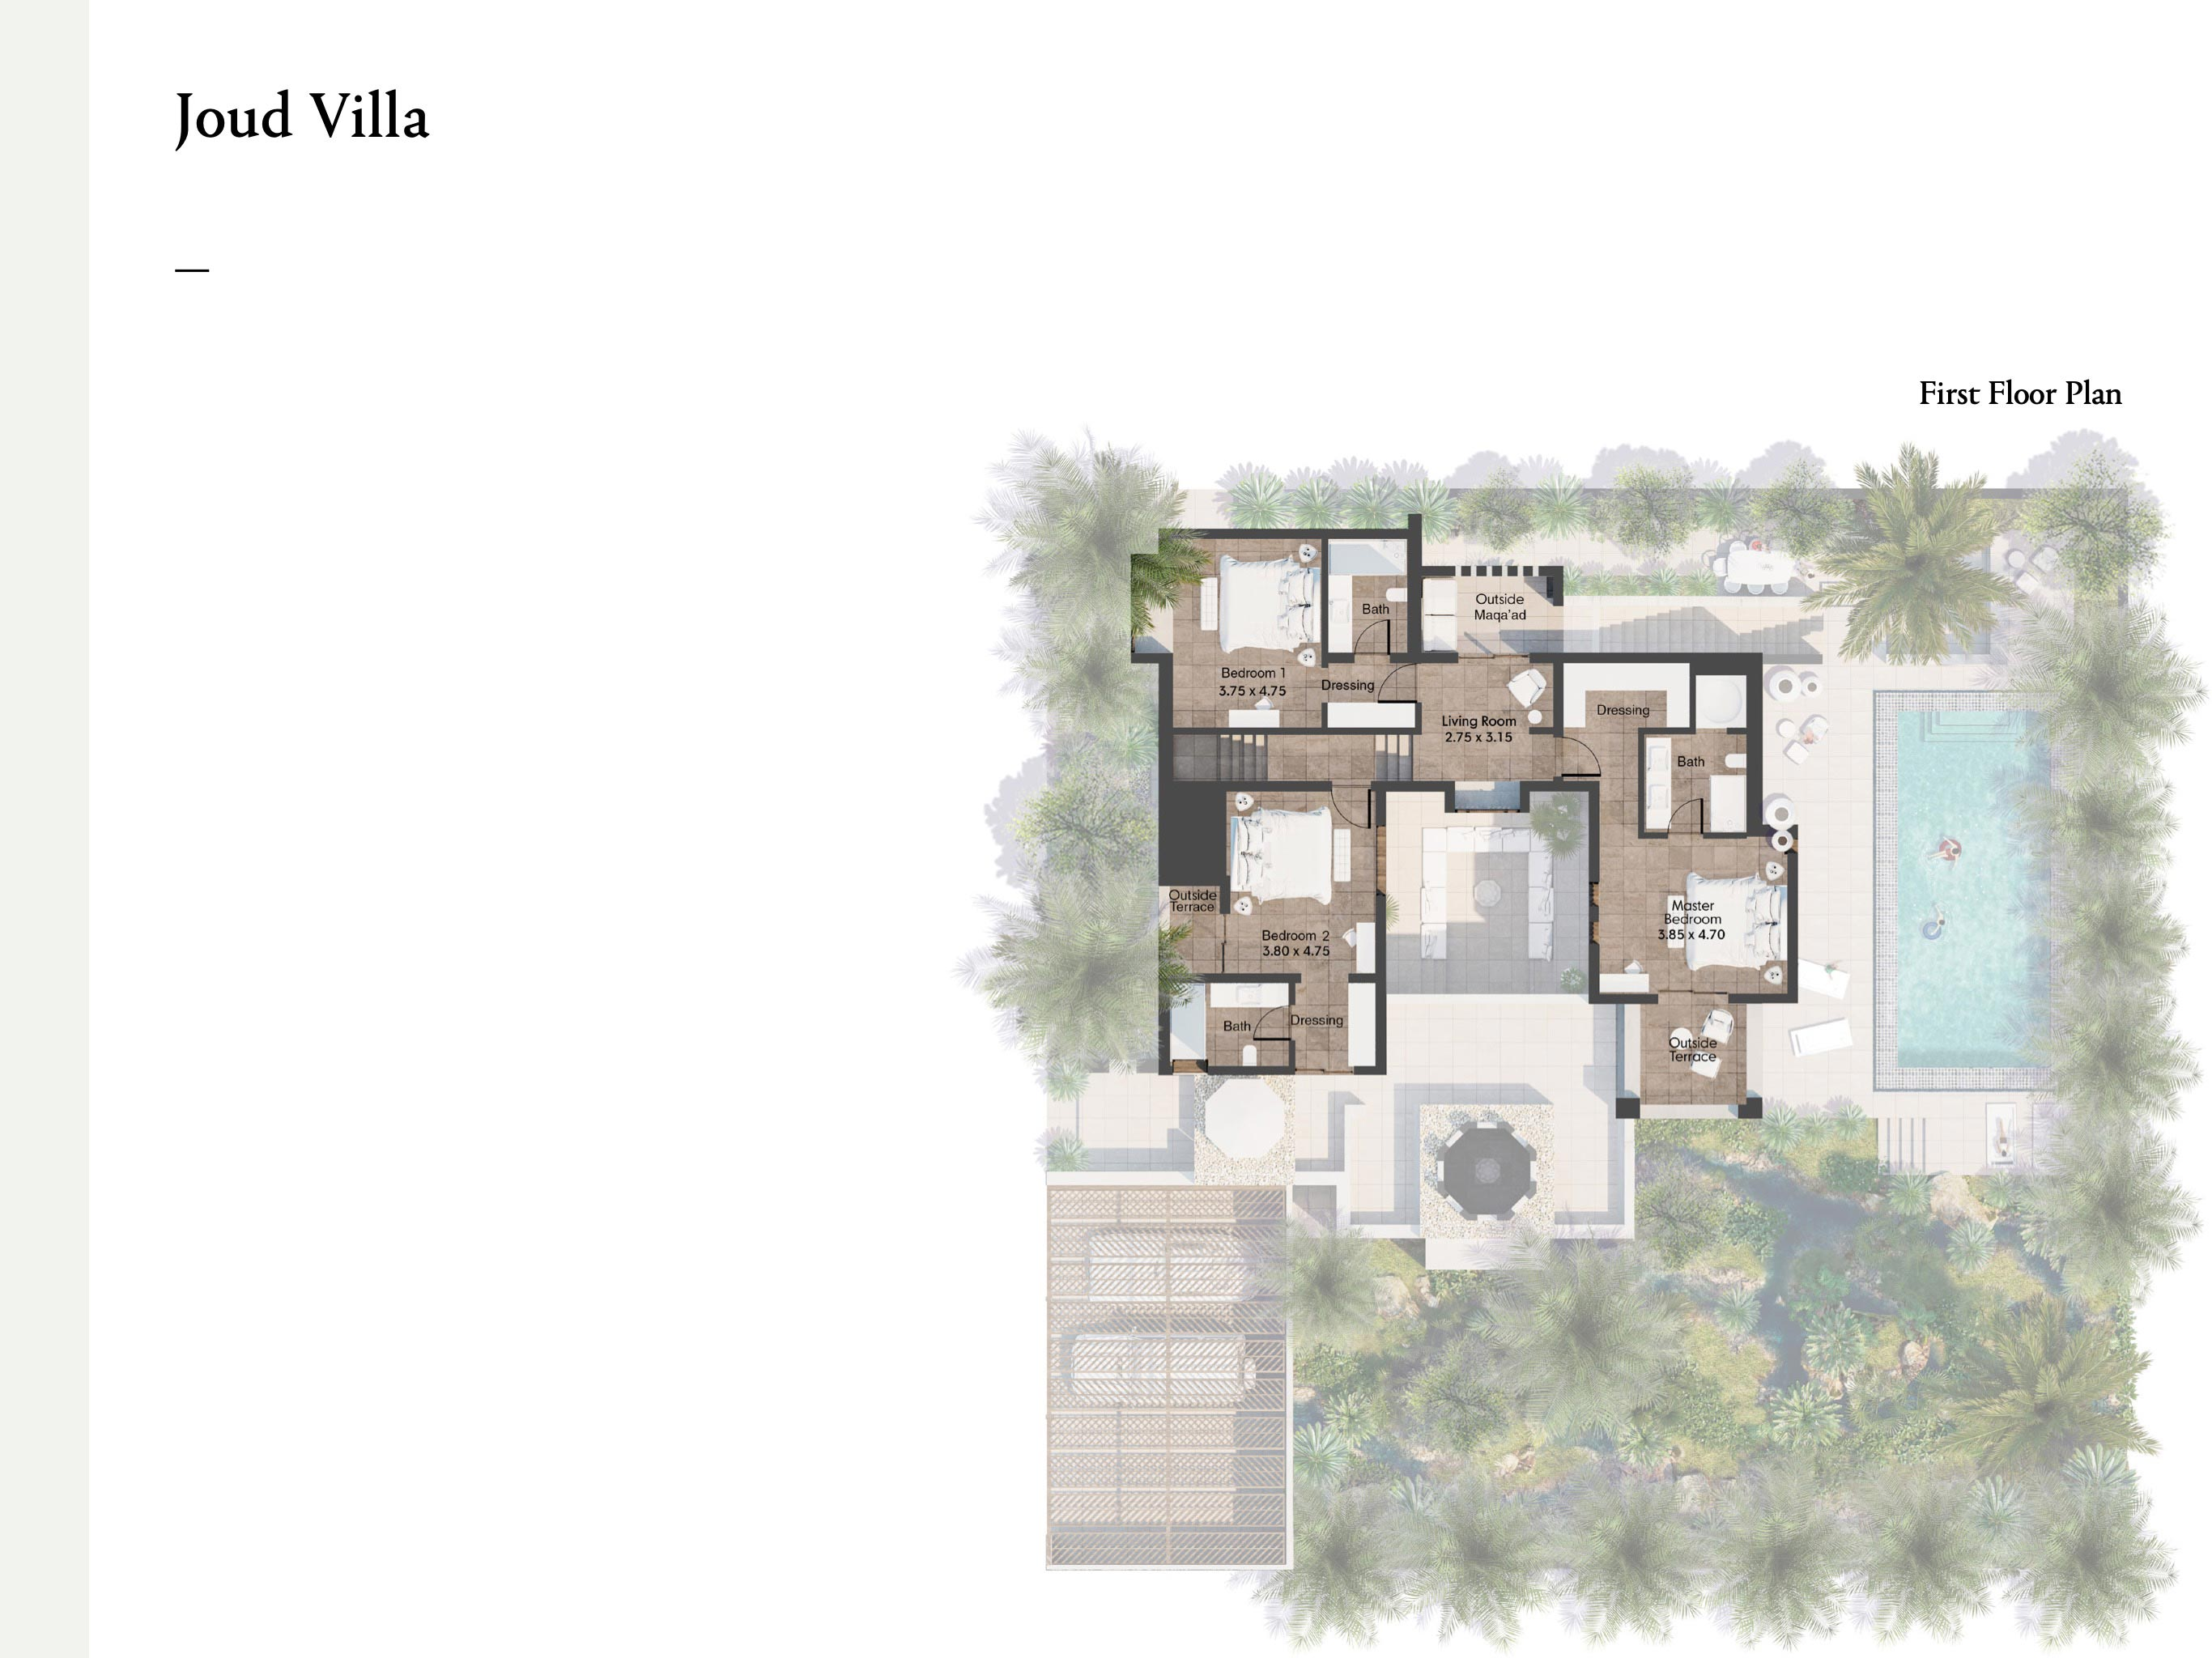 3 Bedroom Joud Villas  Size 422 sqm